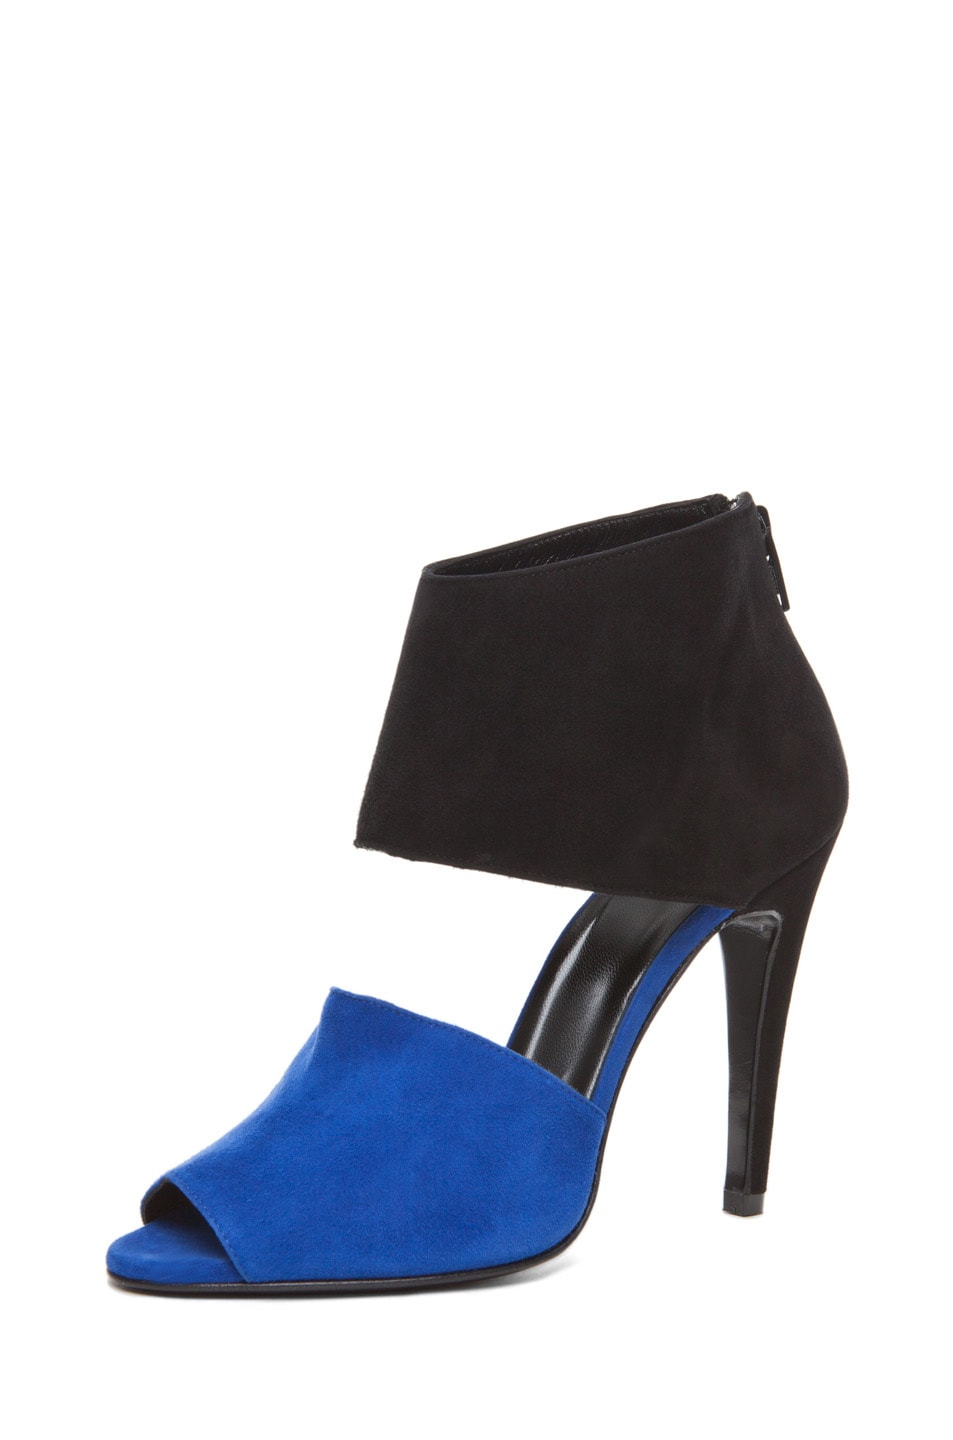 Image 1 of Pierre Hardy Multi Colored Heel in Blue